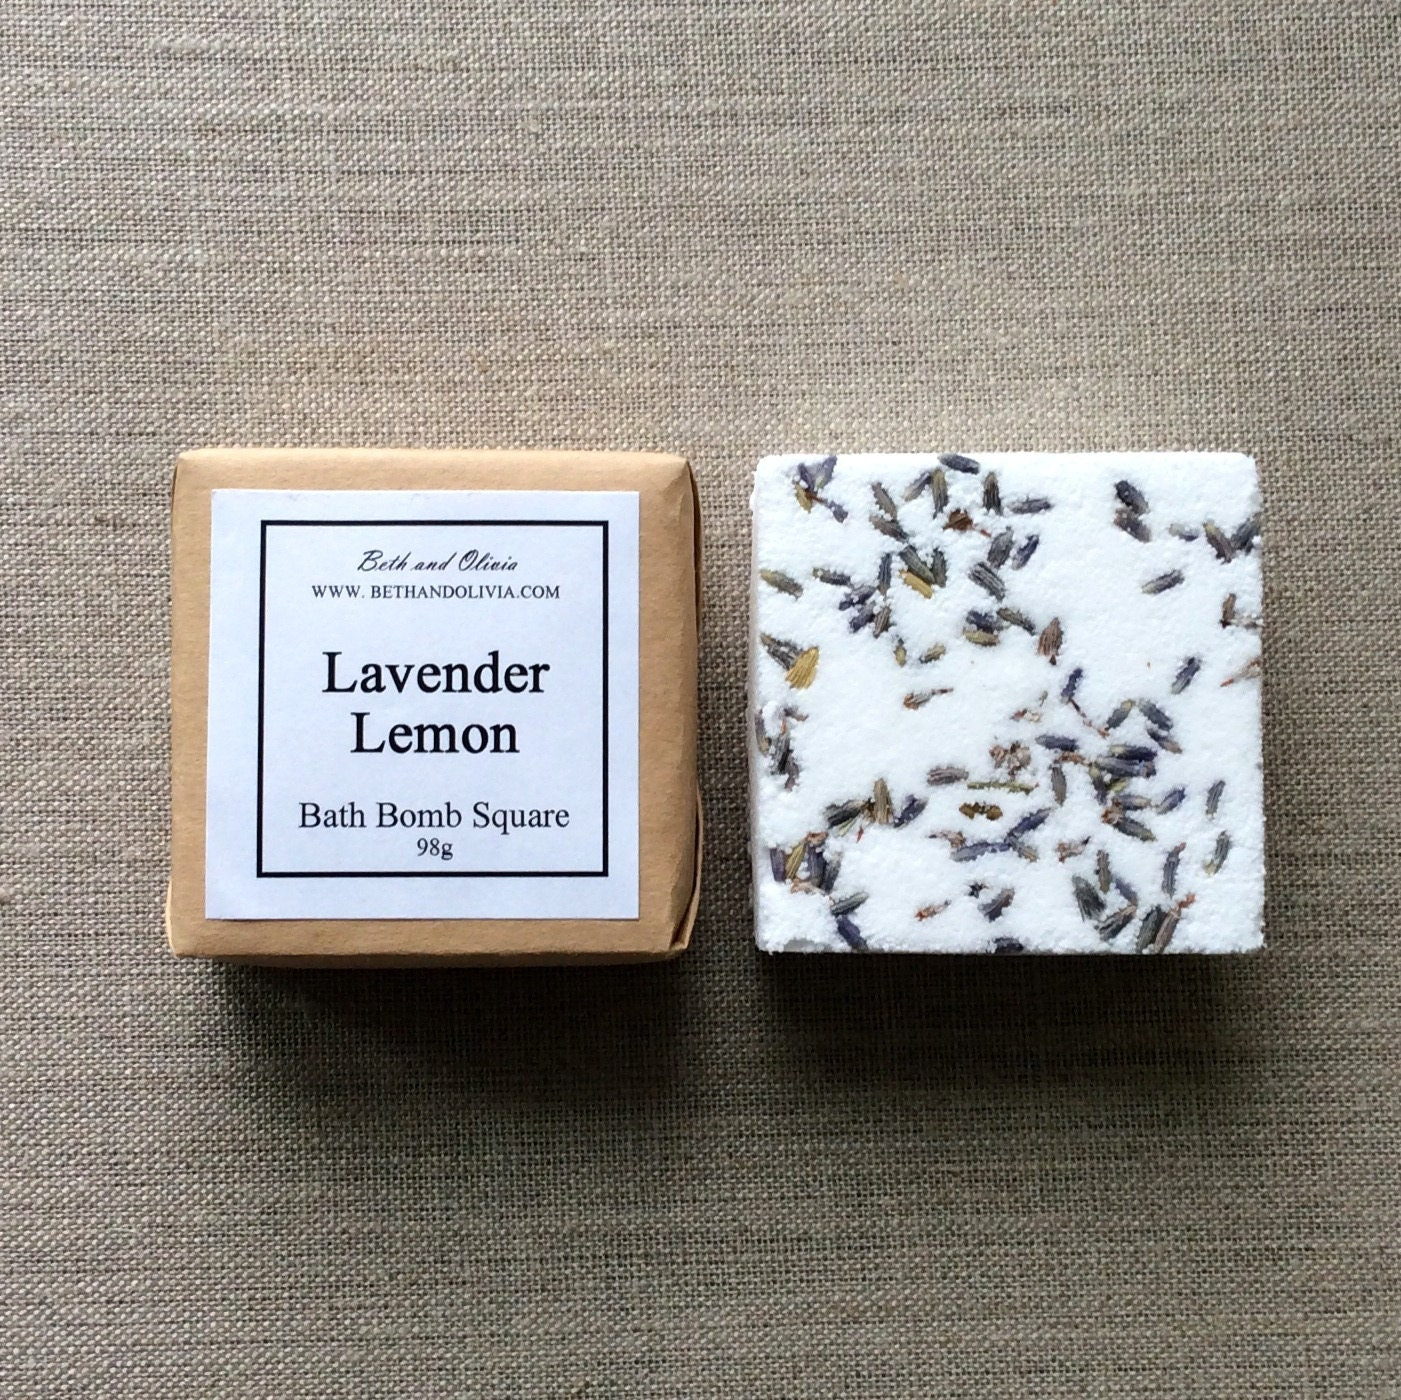 Set of 6 Lavender Lemon Bath Bombs, gifts for teens, bath bomb squares, bath bomb, bridal shower favors, lavender bath bomb, Lemon bath bomb